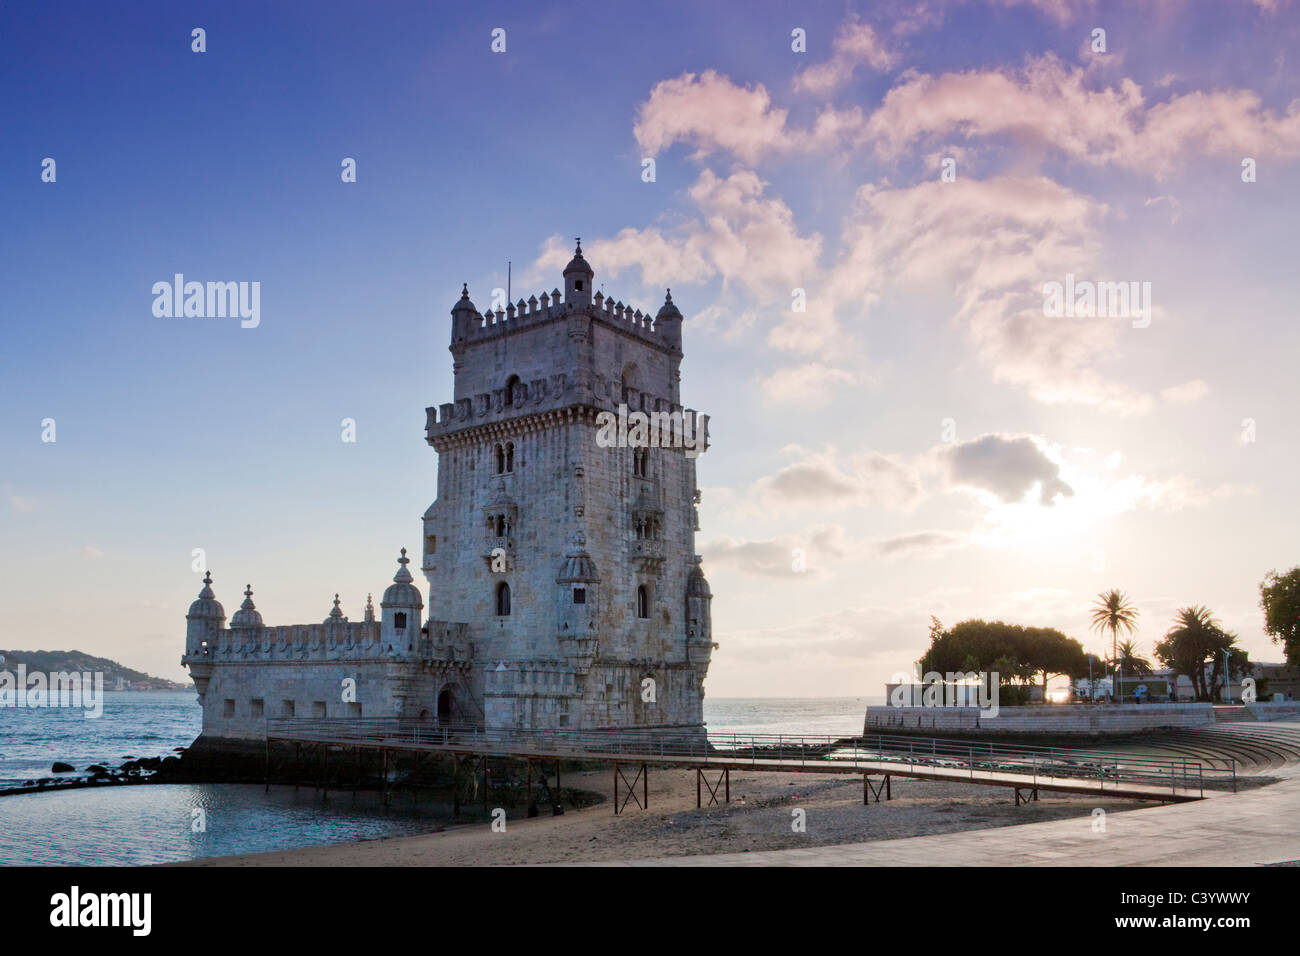 Portugal, Europe, Lisbon, Belem, tower, rook, UNESCO, world cultural heritage, - Stock Image